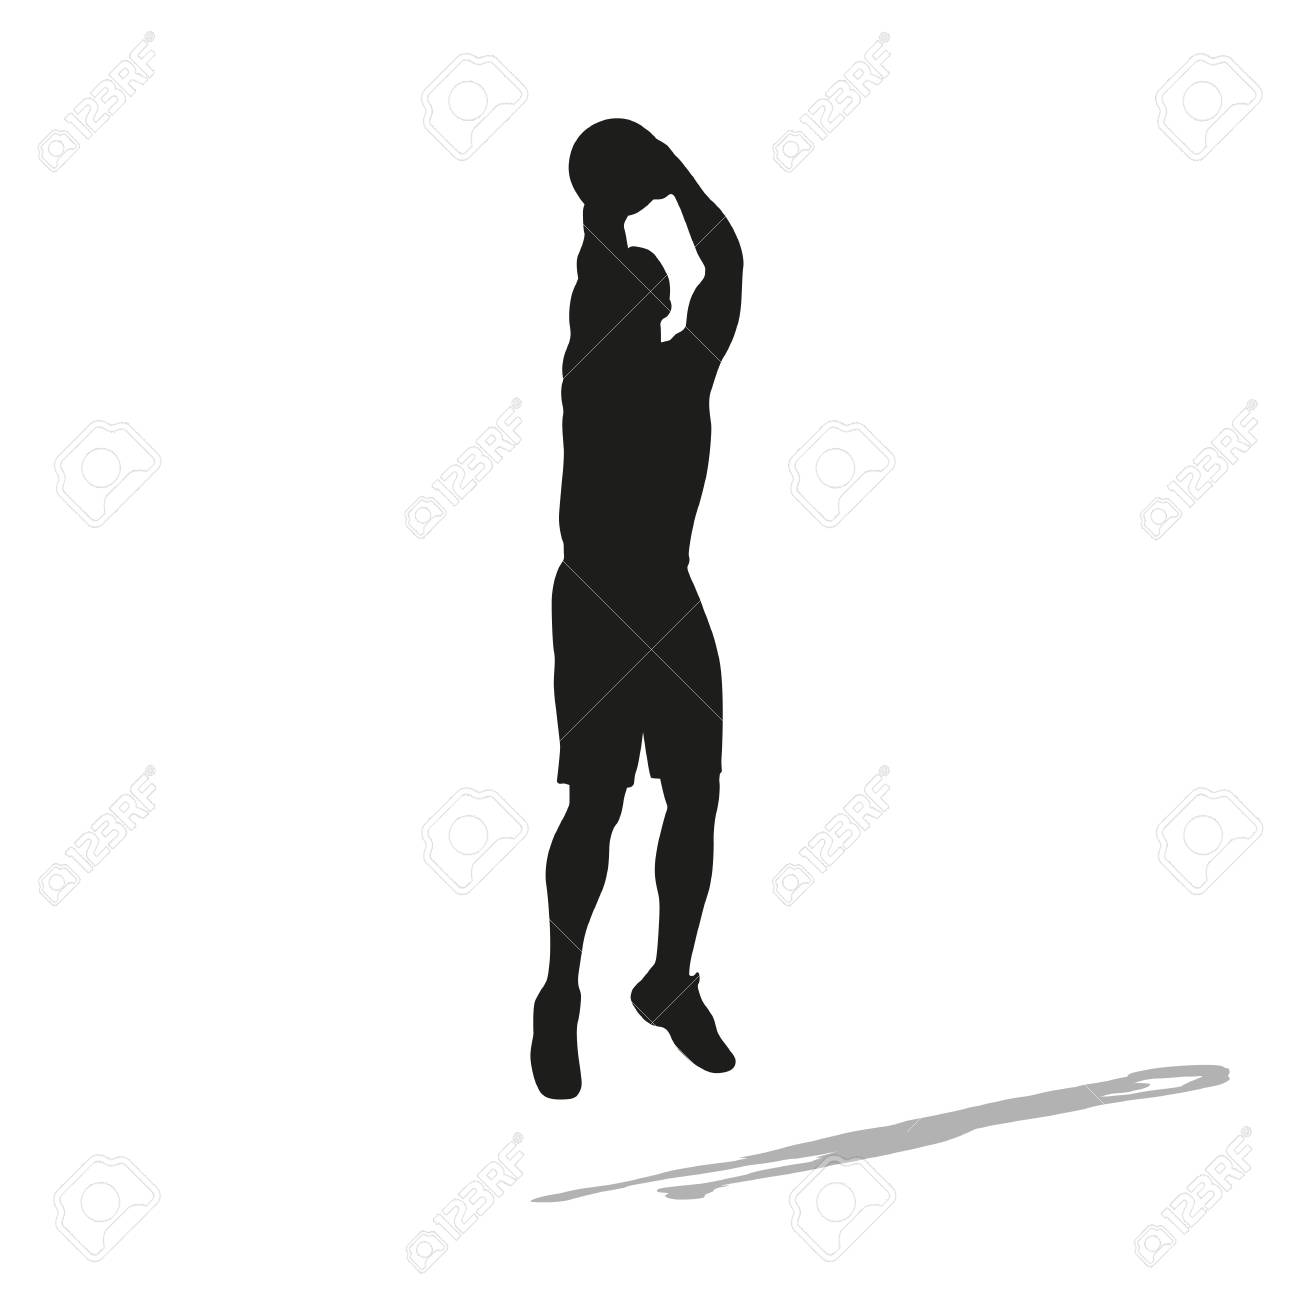 Shooting basketball player vector silhouette. Front view.